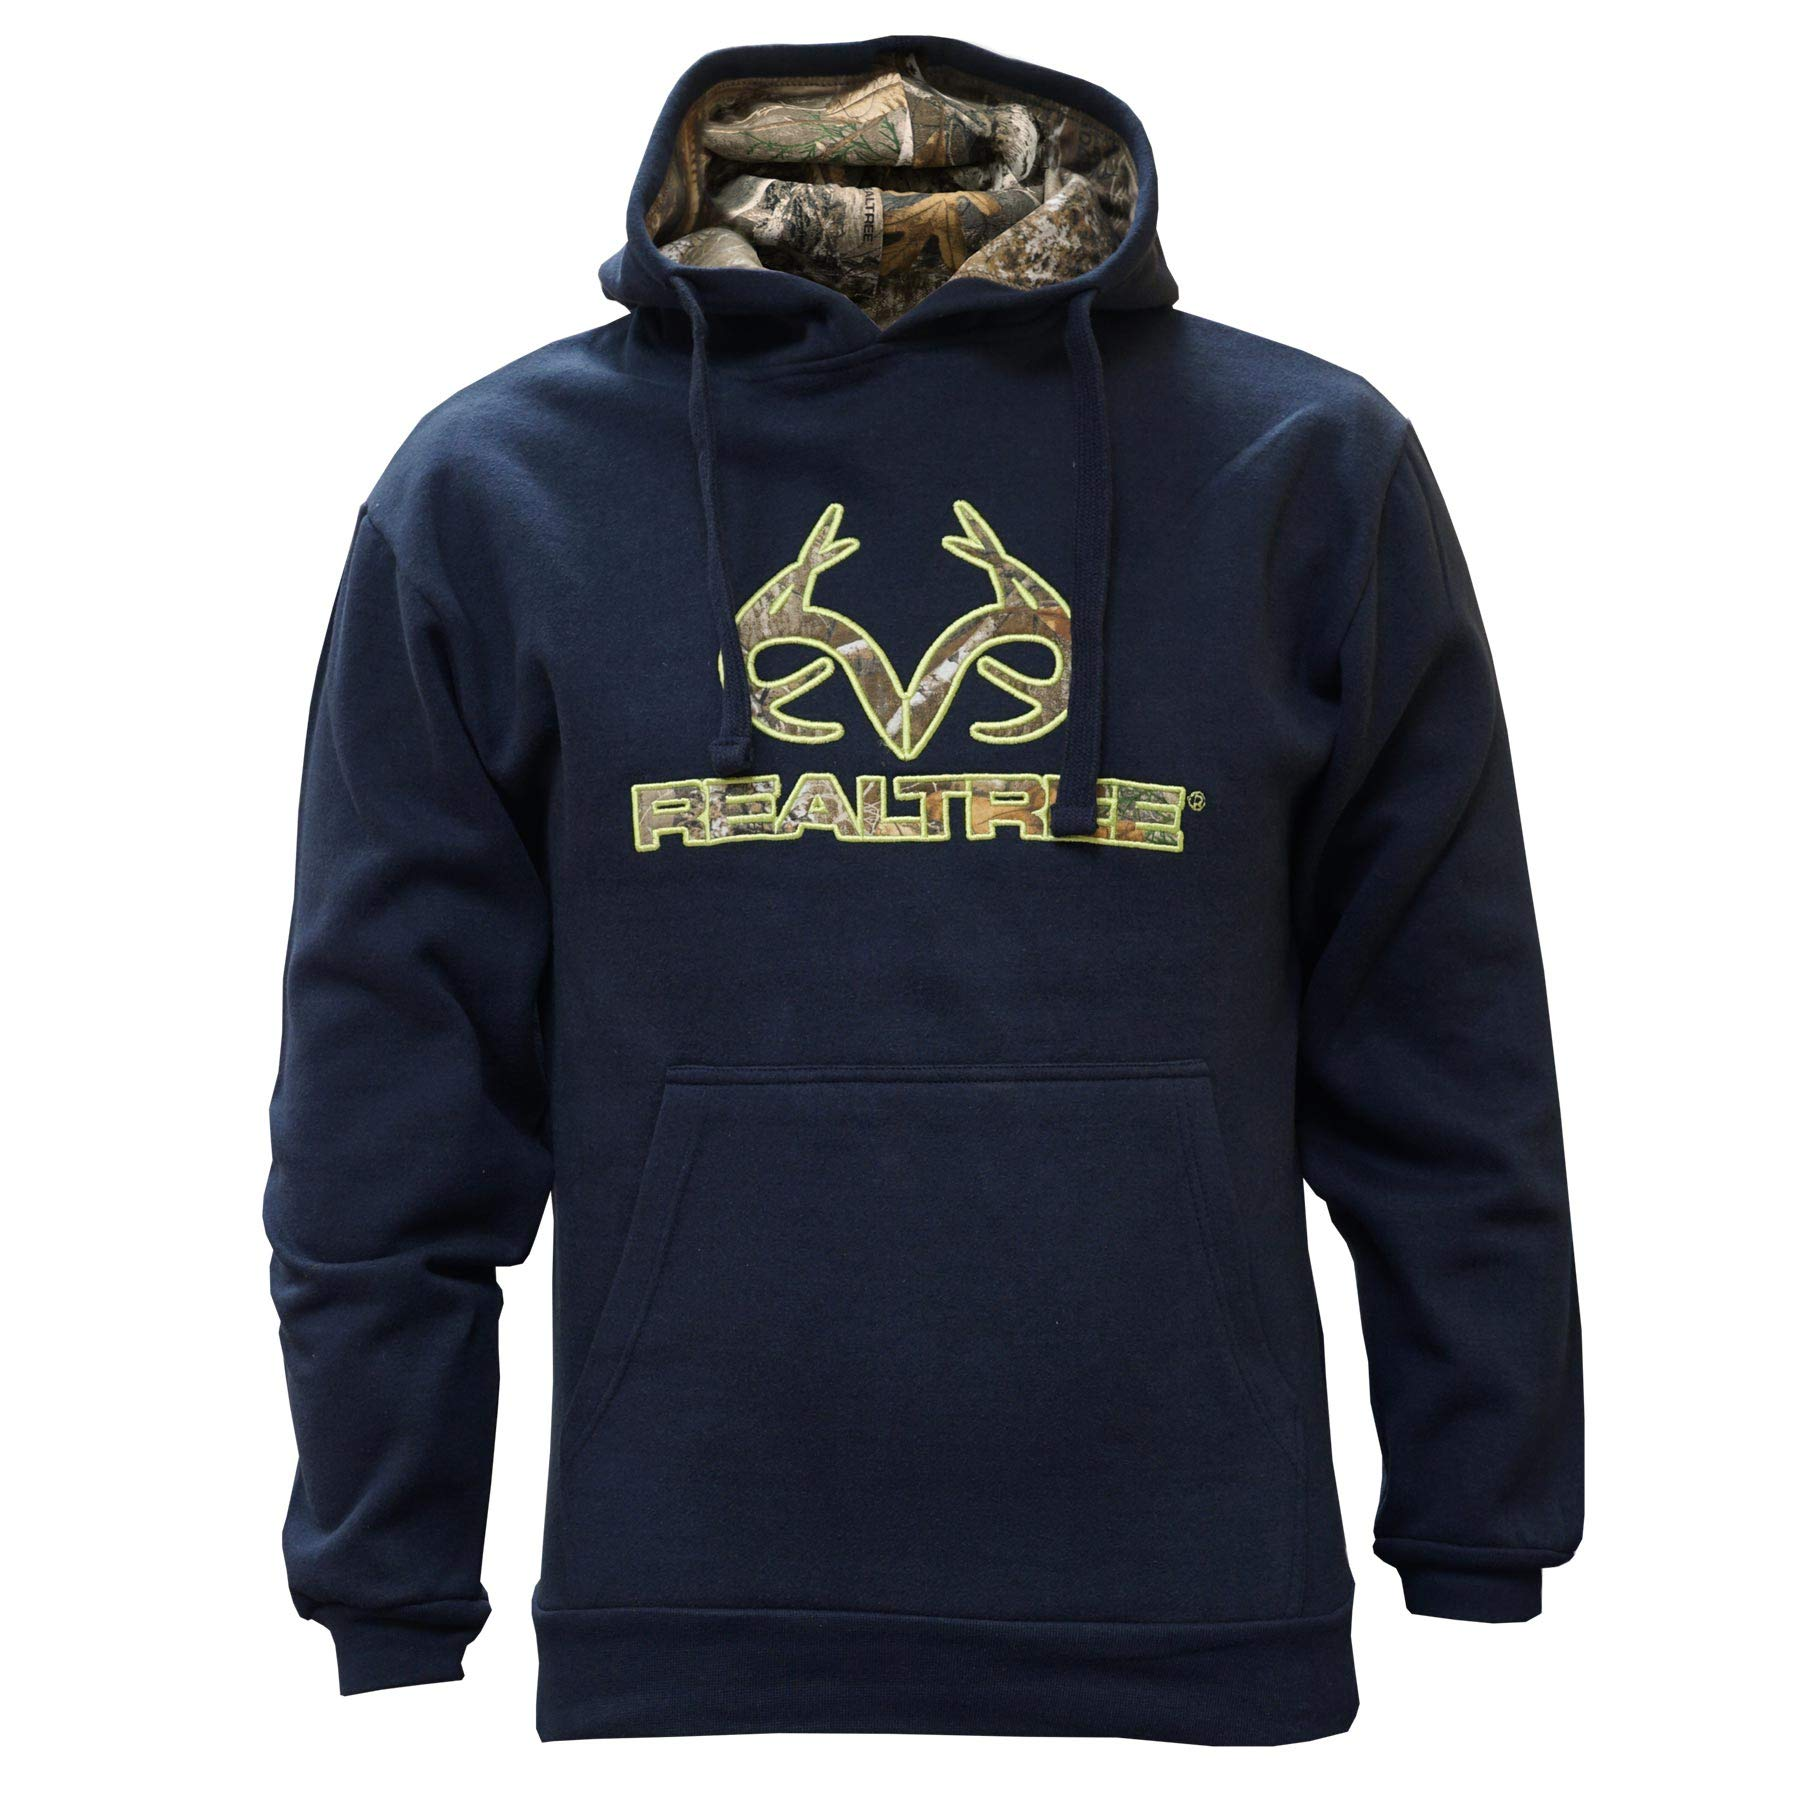 Staghorn Realtree Men's Fleece Applique Hoodie, Airforce Blue, Large